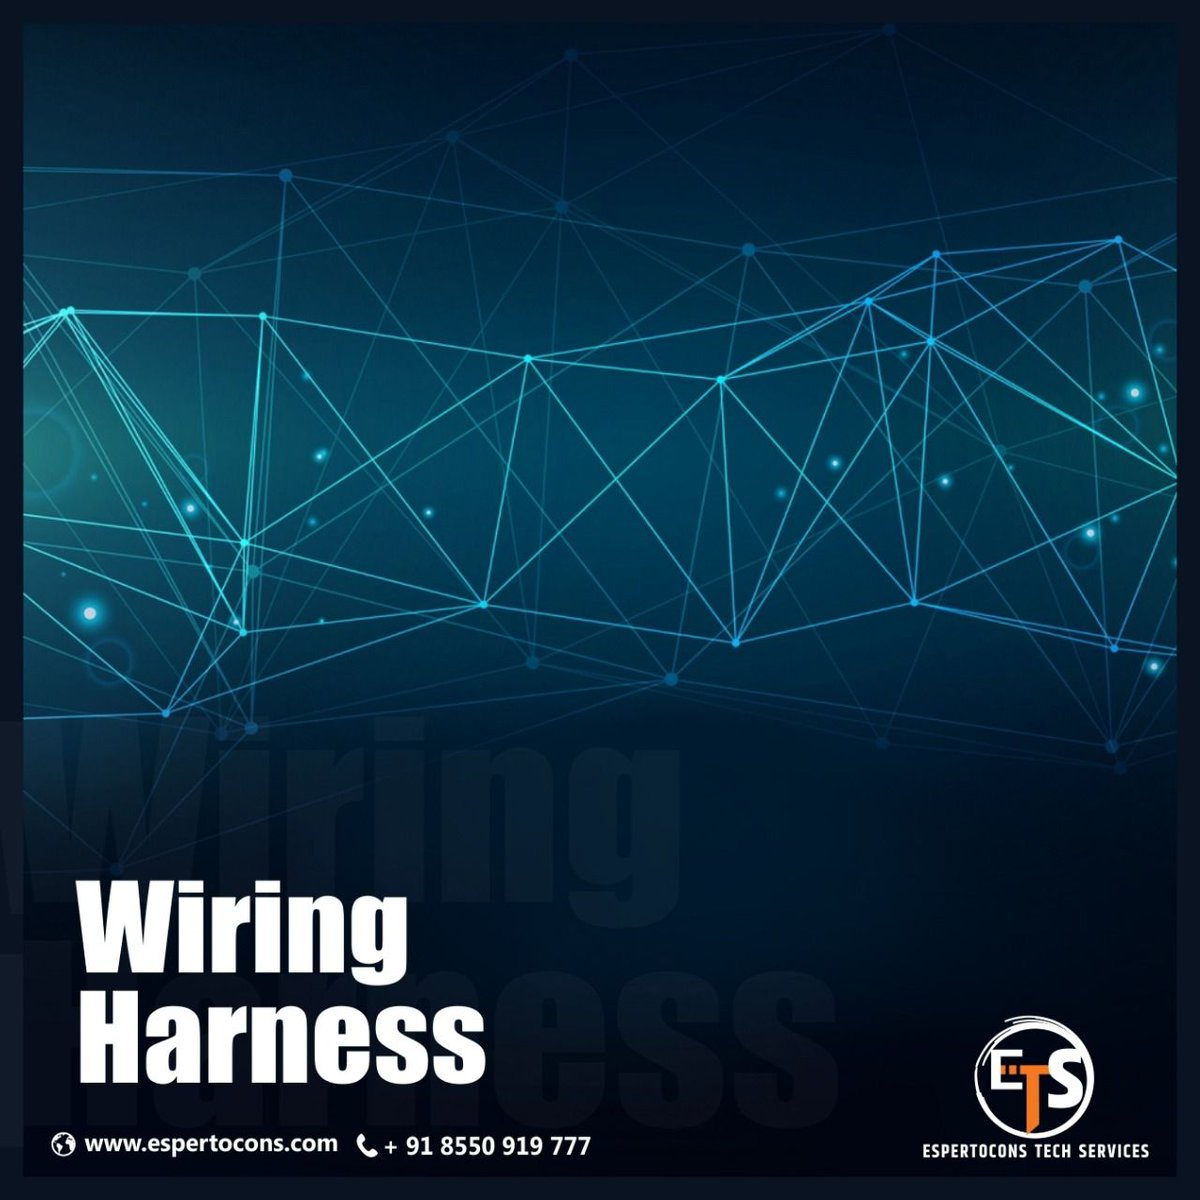 Wiringharness Hashtag On Twitter Wiring Harness Design Courses Espertocons Techservices Is Services Provider In Pune City Bangalore Indiaour Electrical Cable